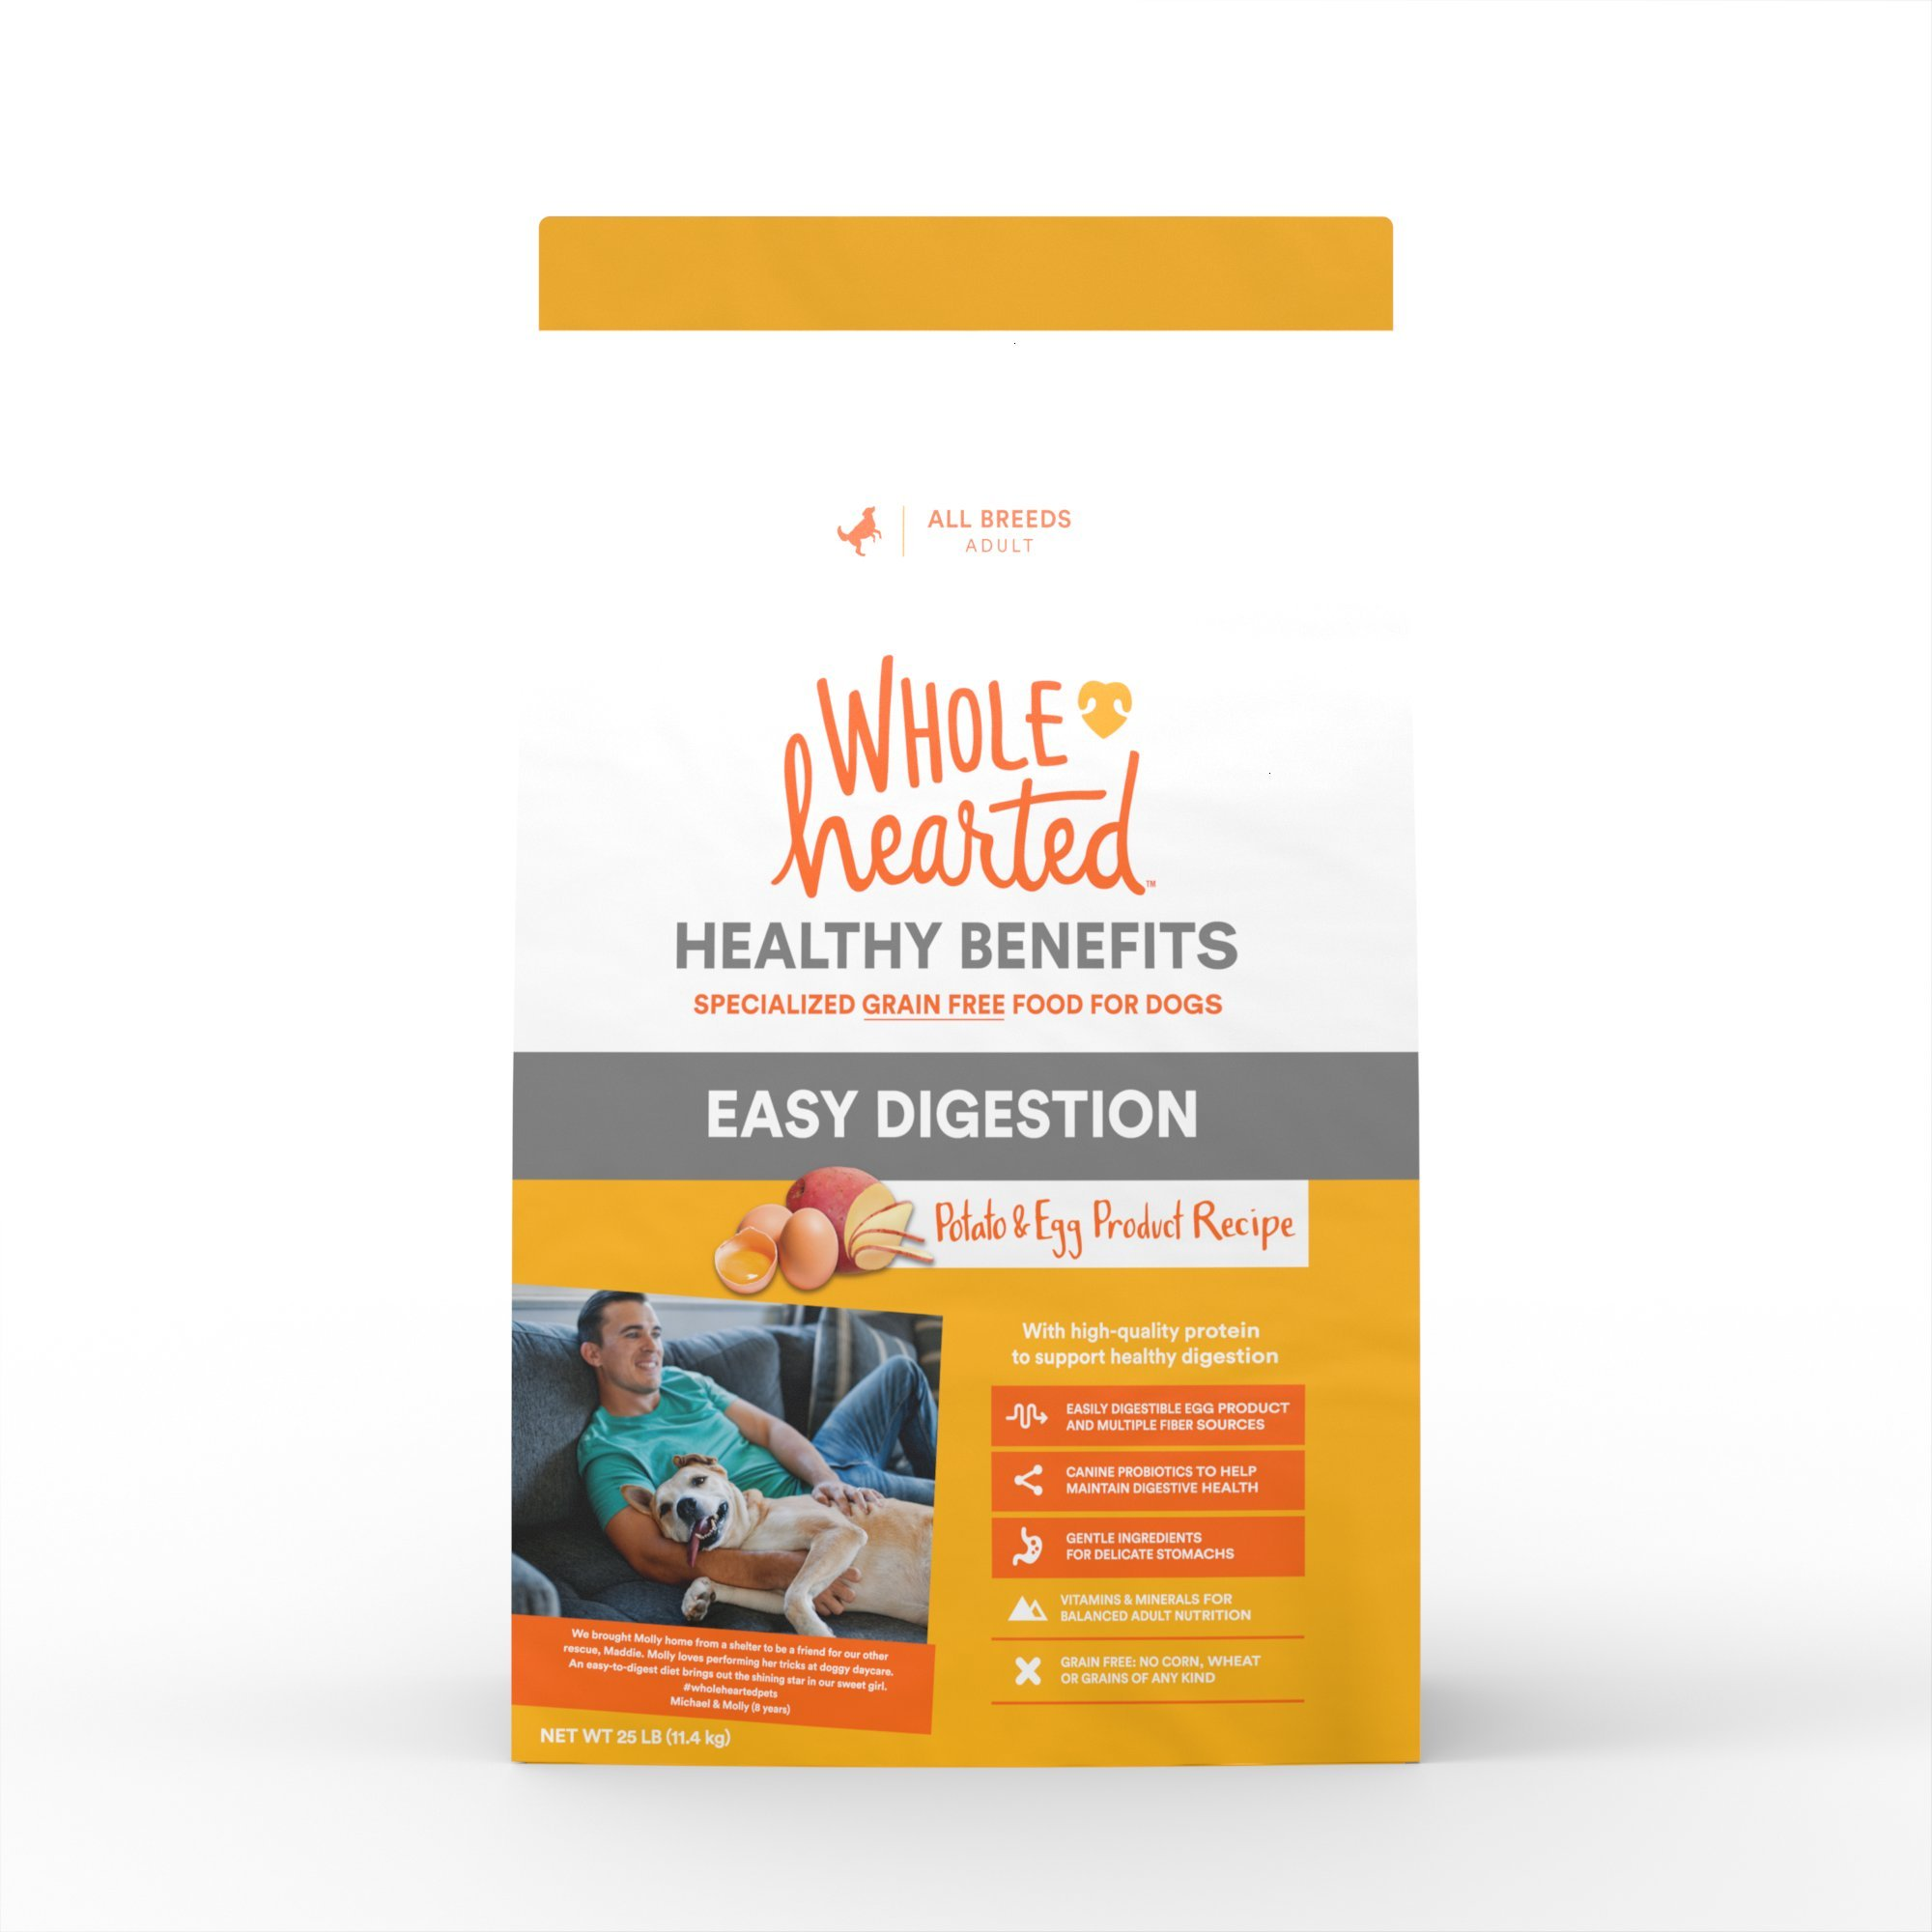 WholeHearted Grain Free Healthy Benefits Easy Digestion Potato and Egg Product Recipe Dry Dog Food, 25 lbs. by WholeHearted